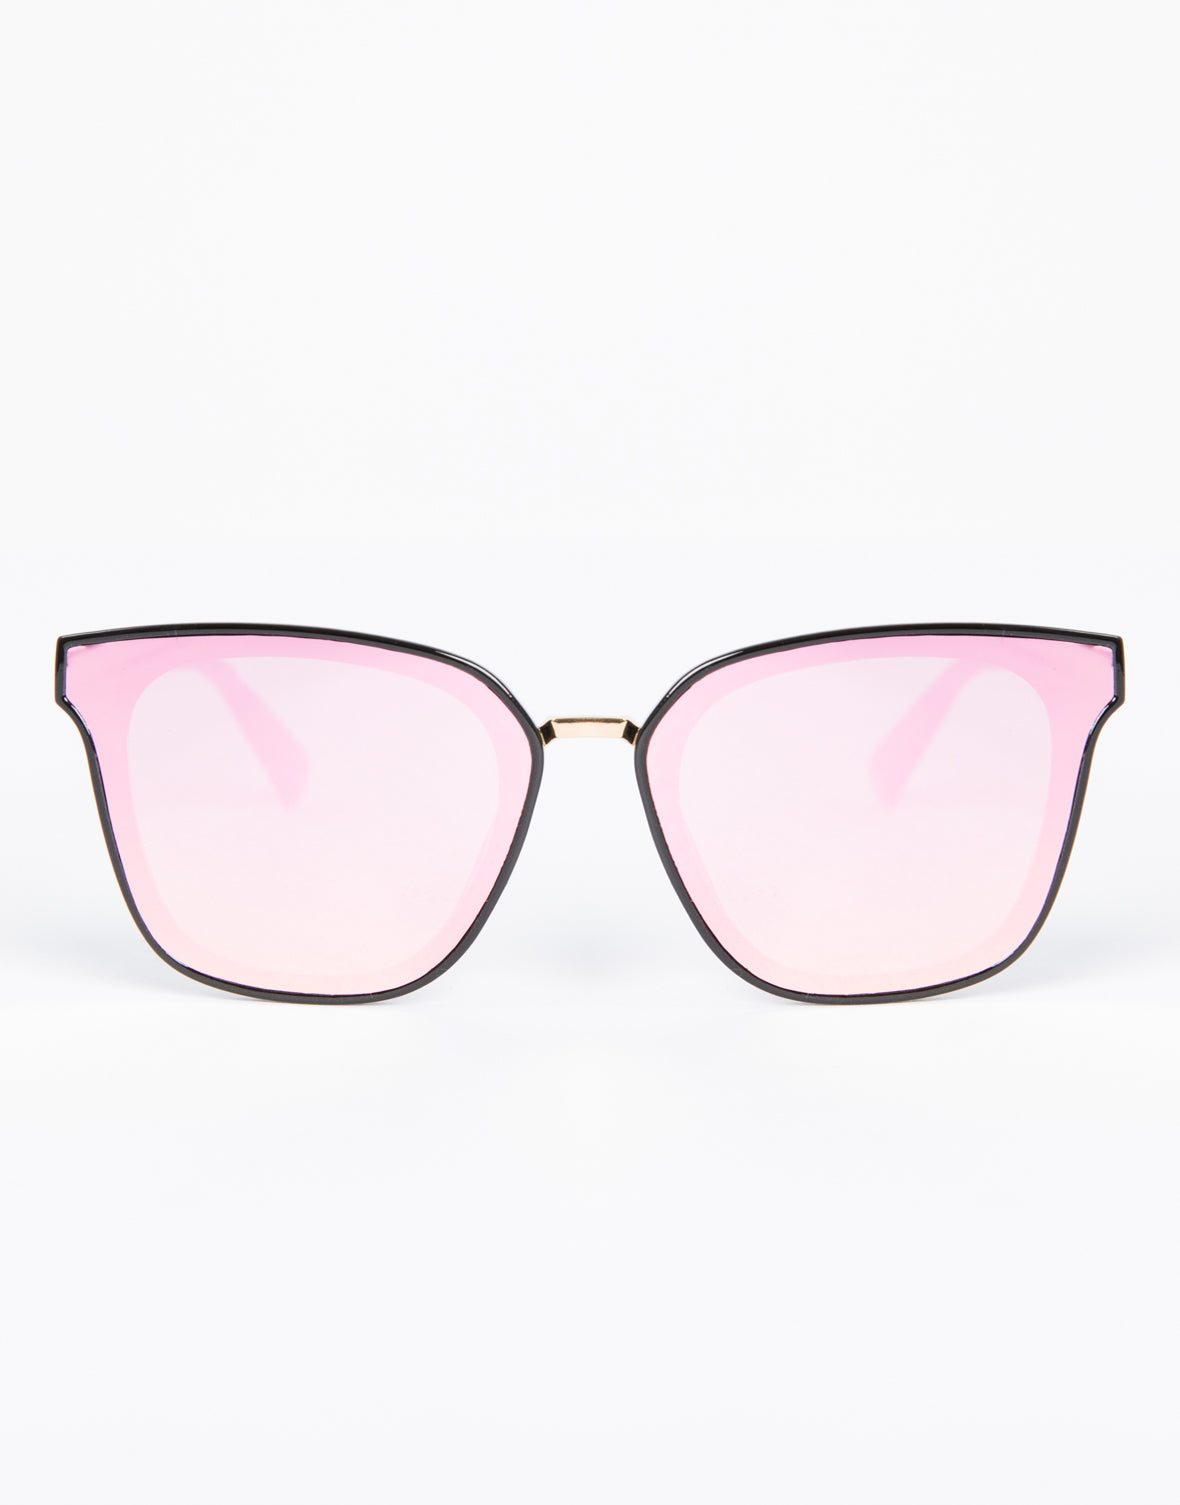 Daria Everyday Sunglasses